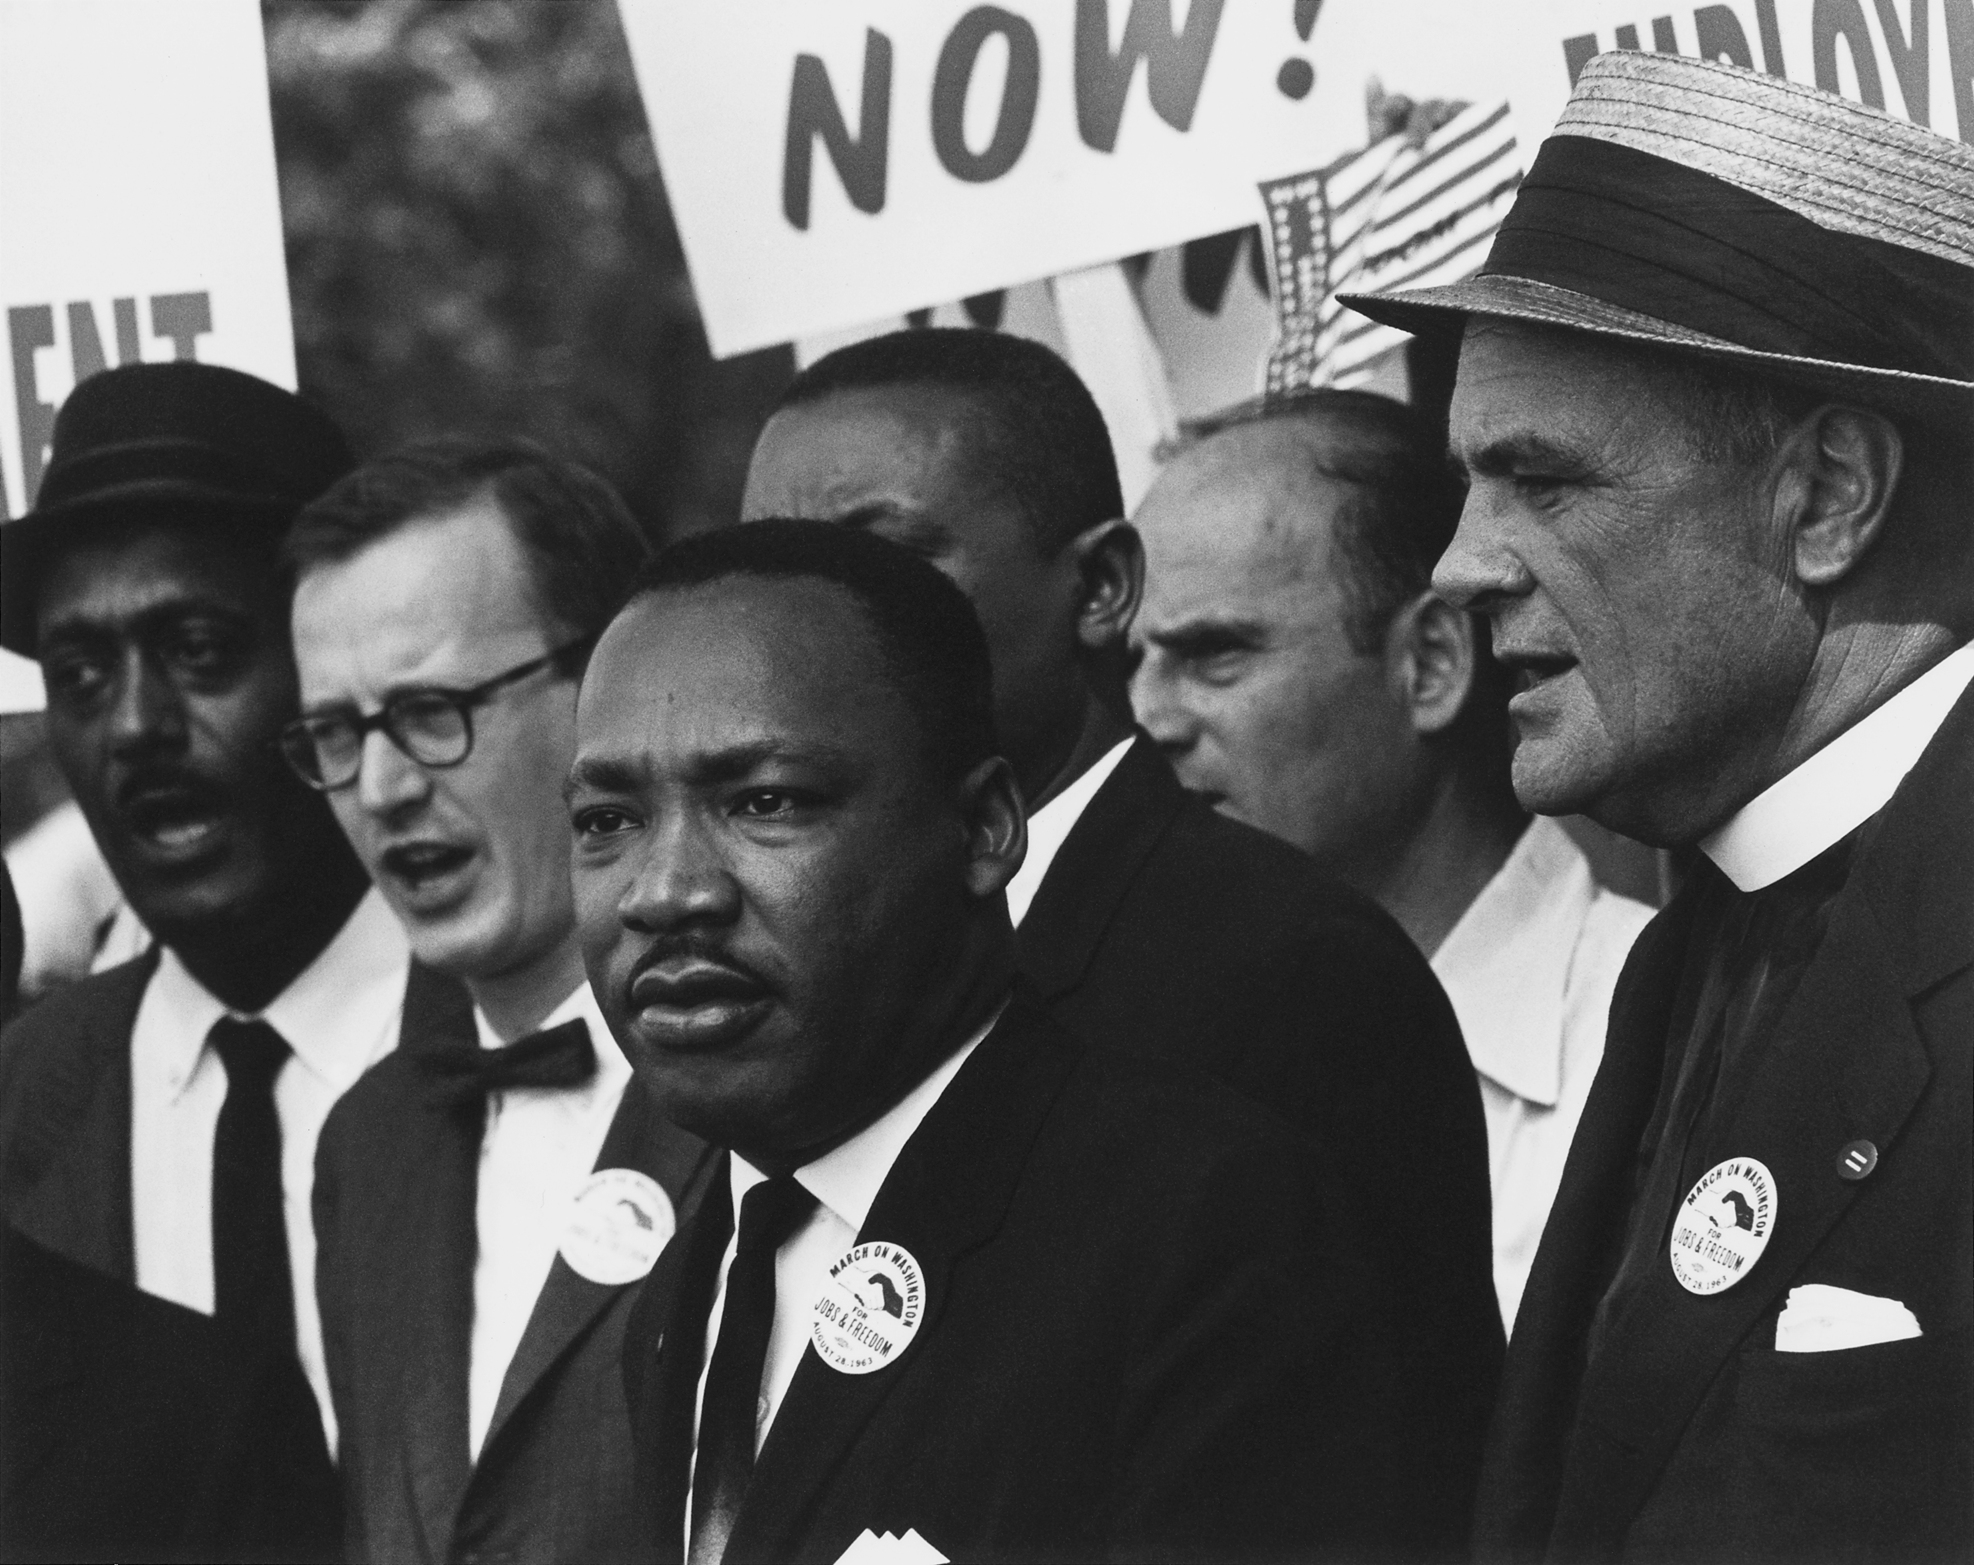 Martin Luther King Jr. - Biography - NobelPrize. org